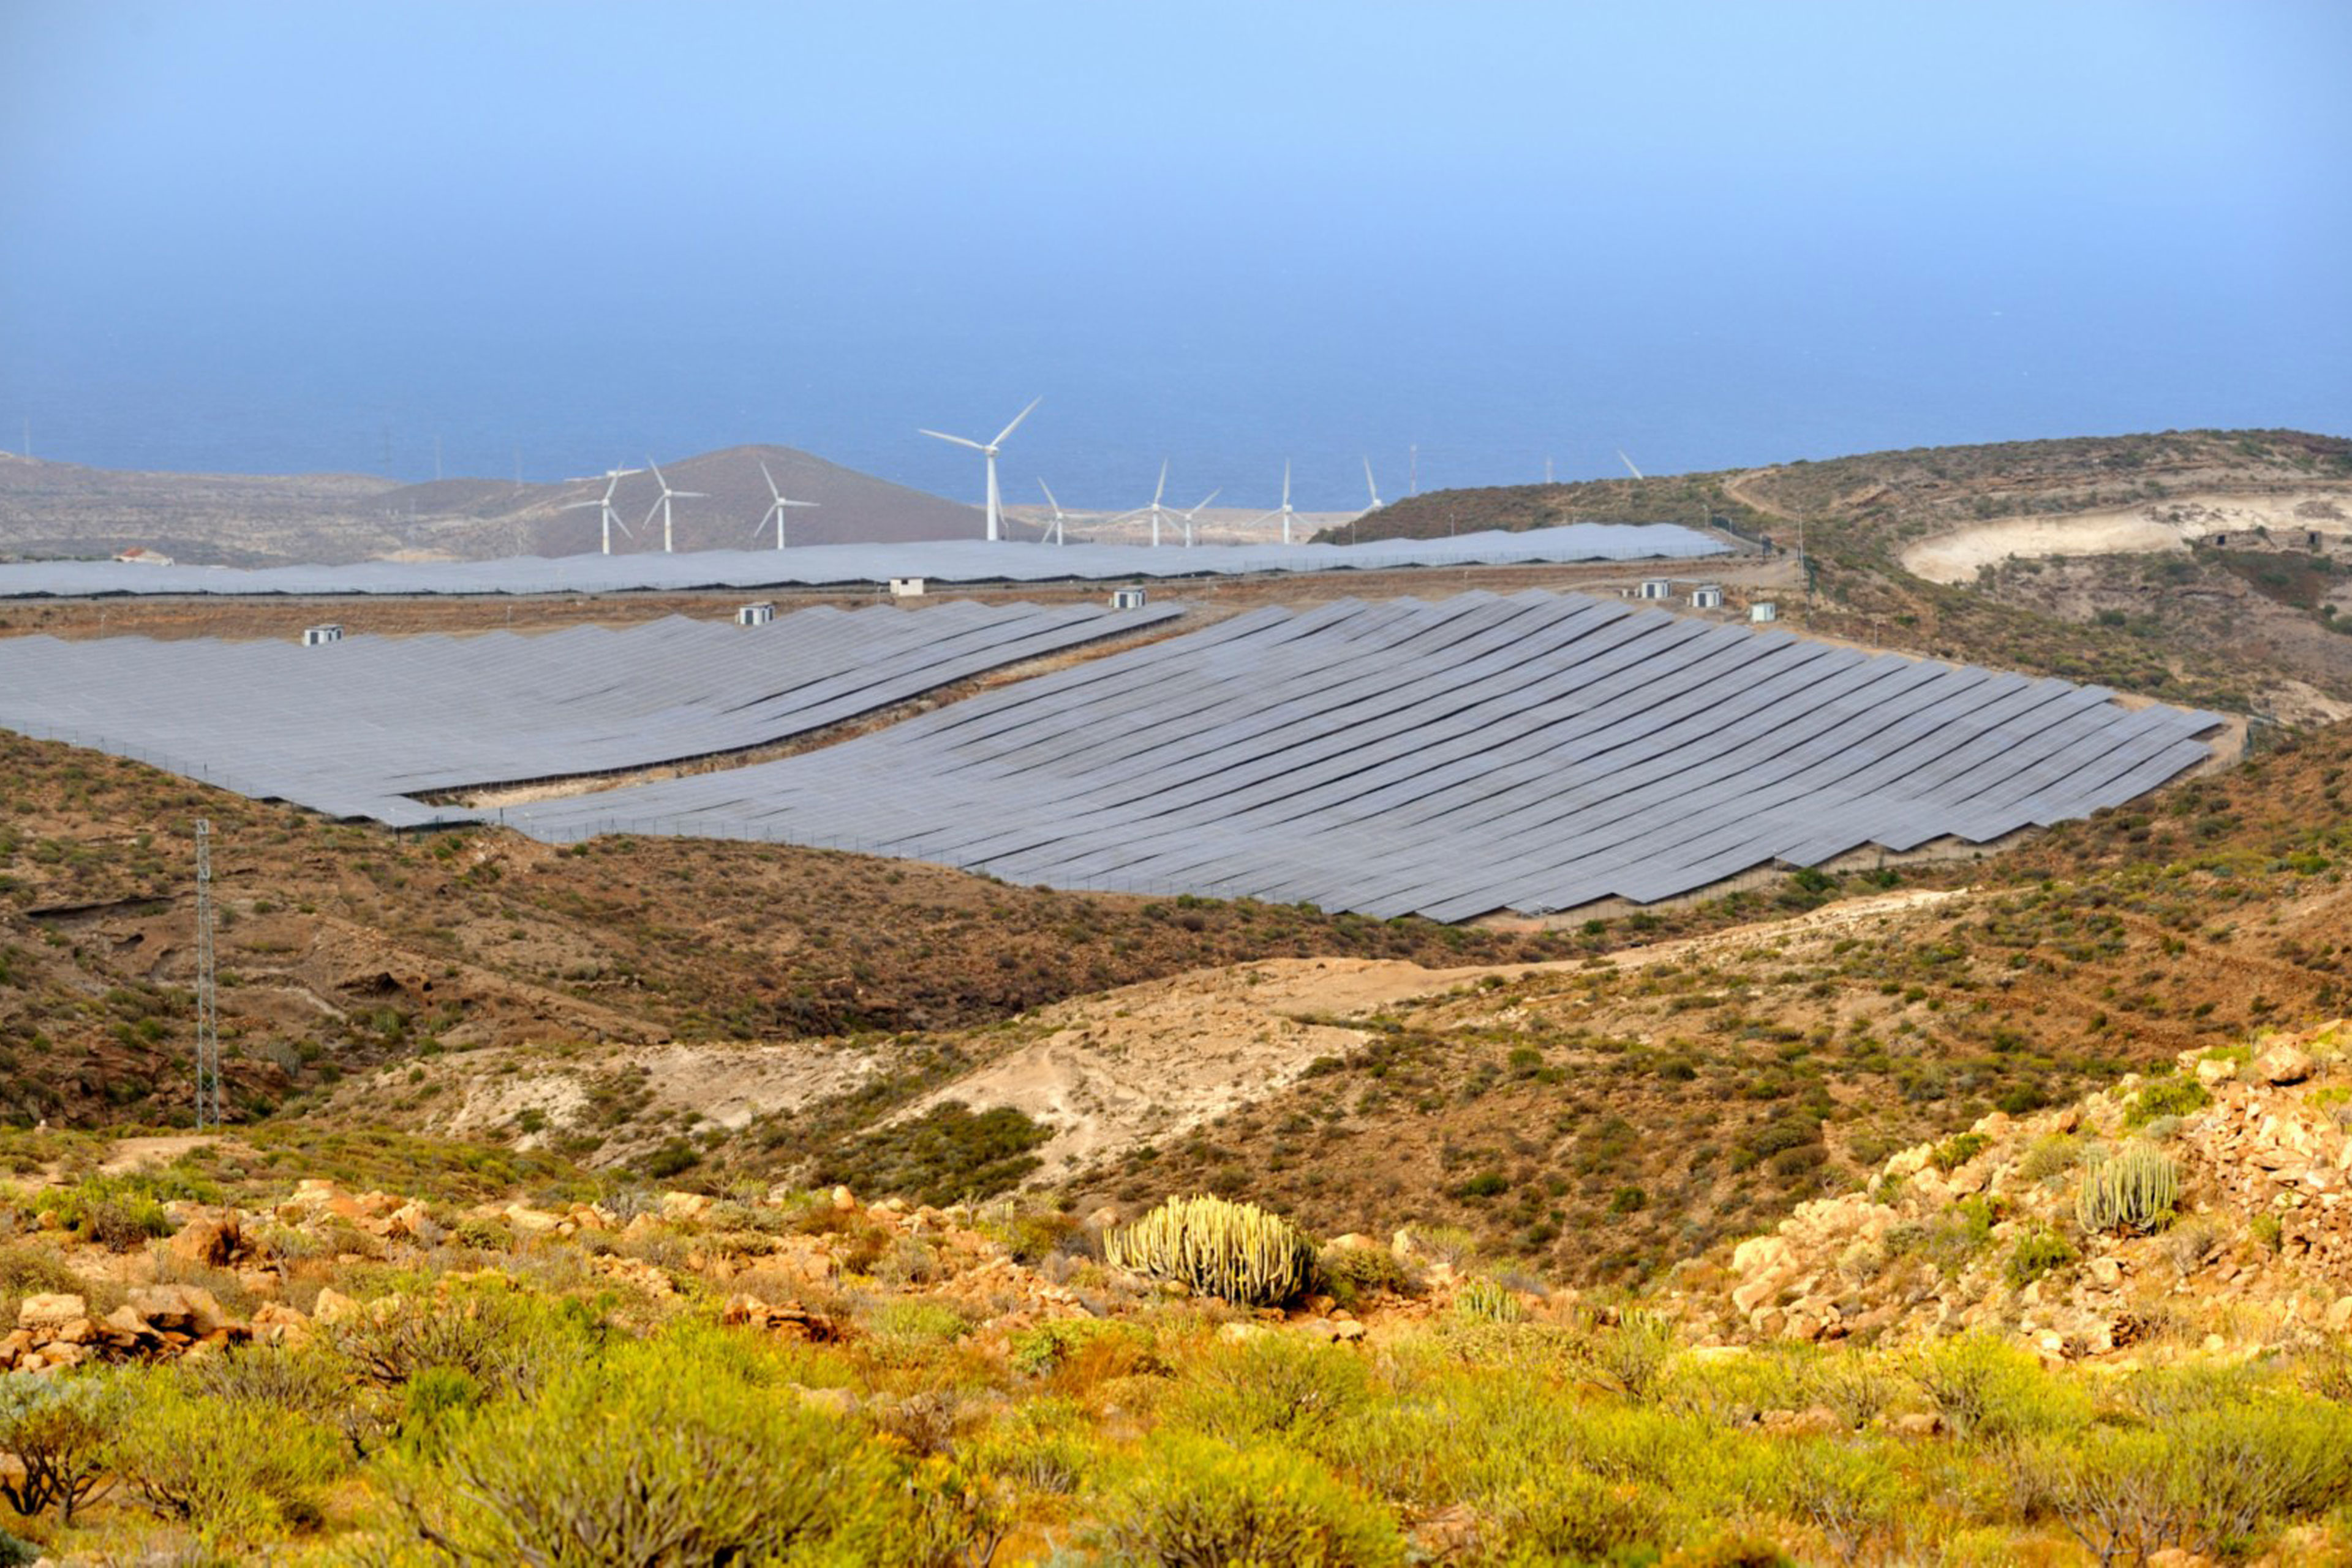 Renewable energy is taking strides towards a subsidy-free